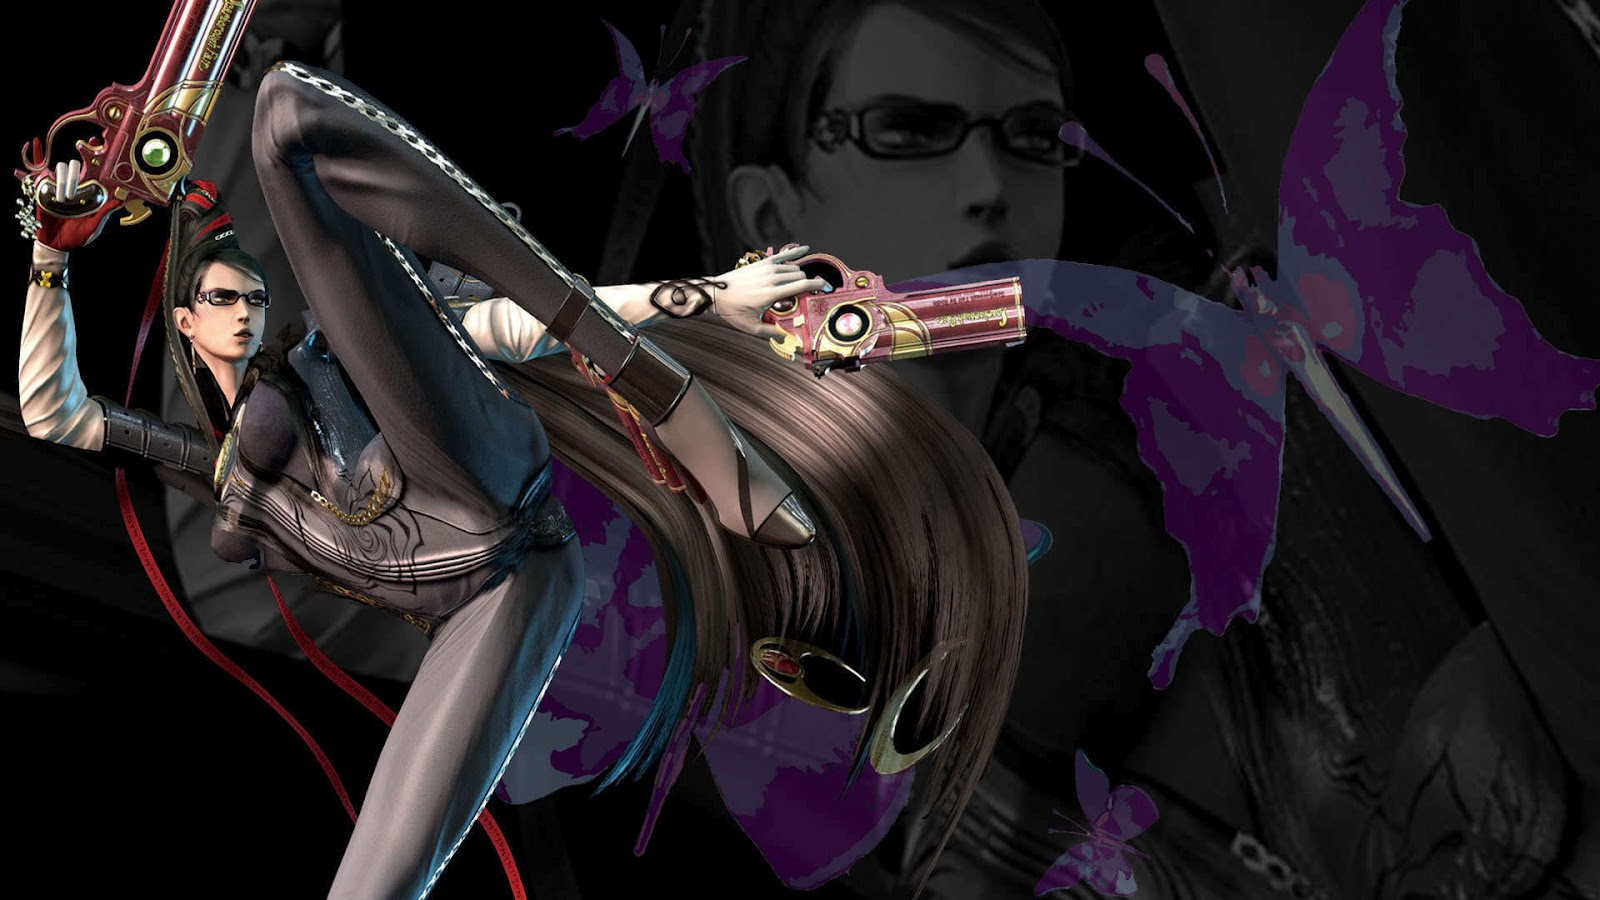 Diario de desarrollo de Bayonetta 2 [video]